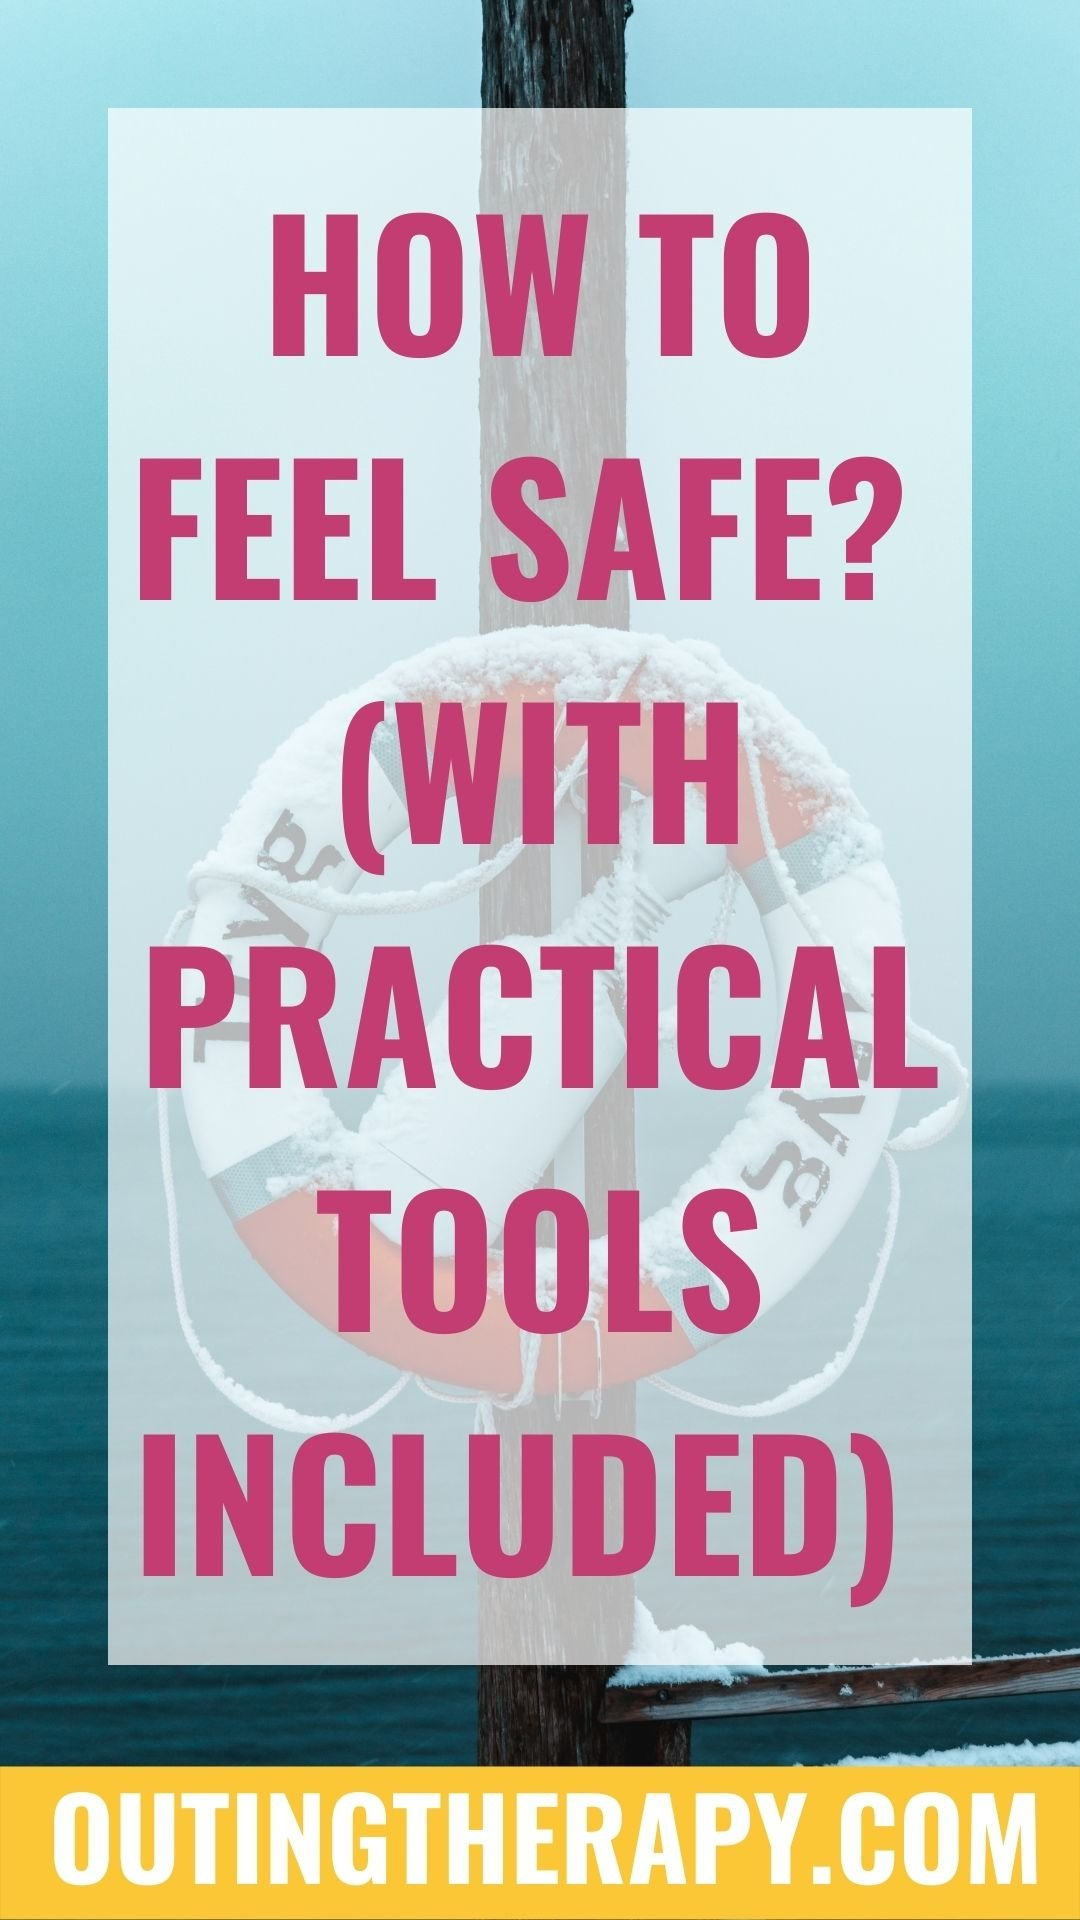 HOW TO FEEL SAFE? (WITH PRACTICAL TOOLS INCLUDED)